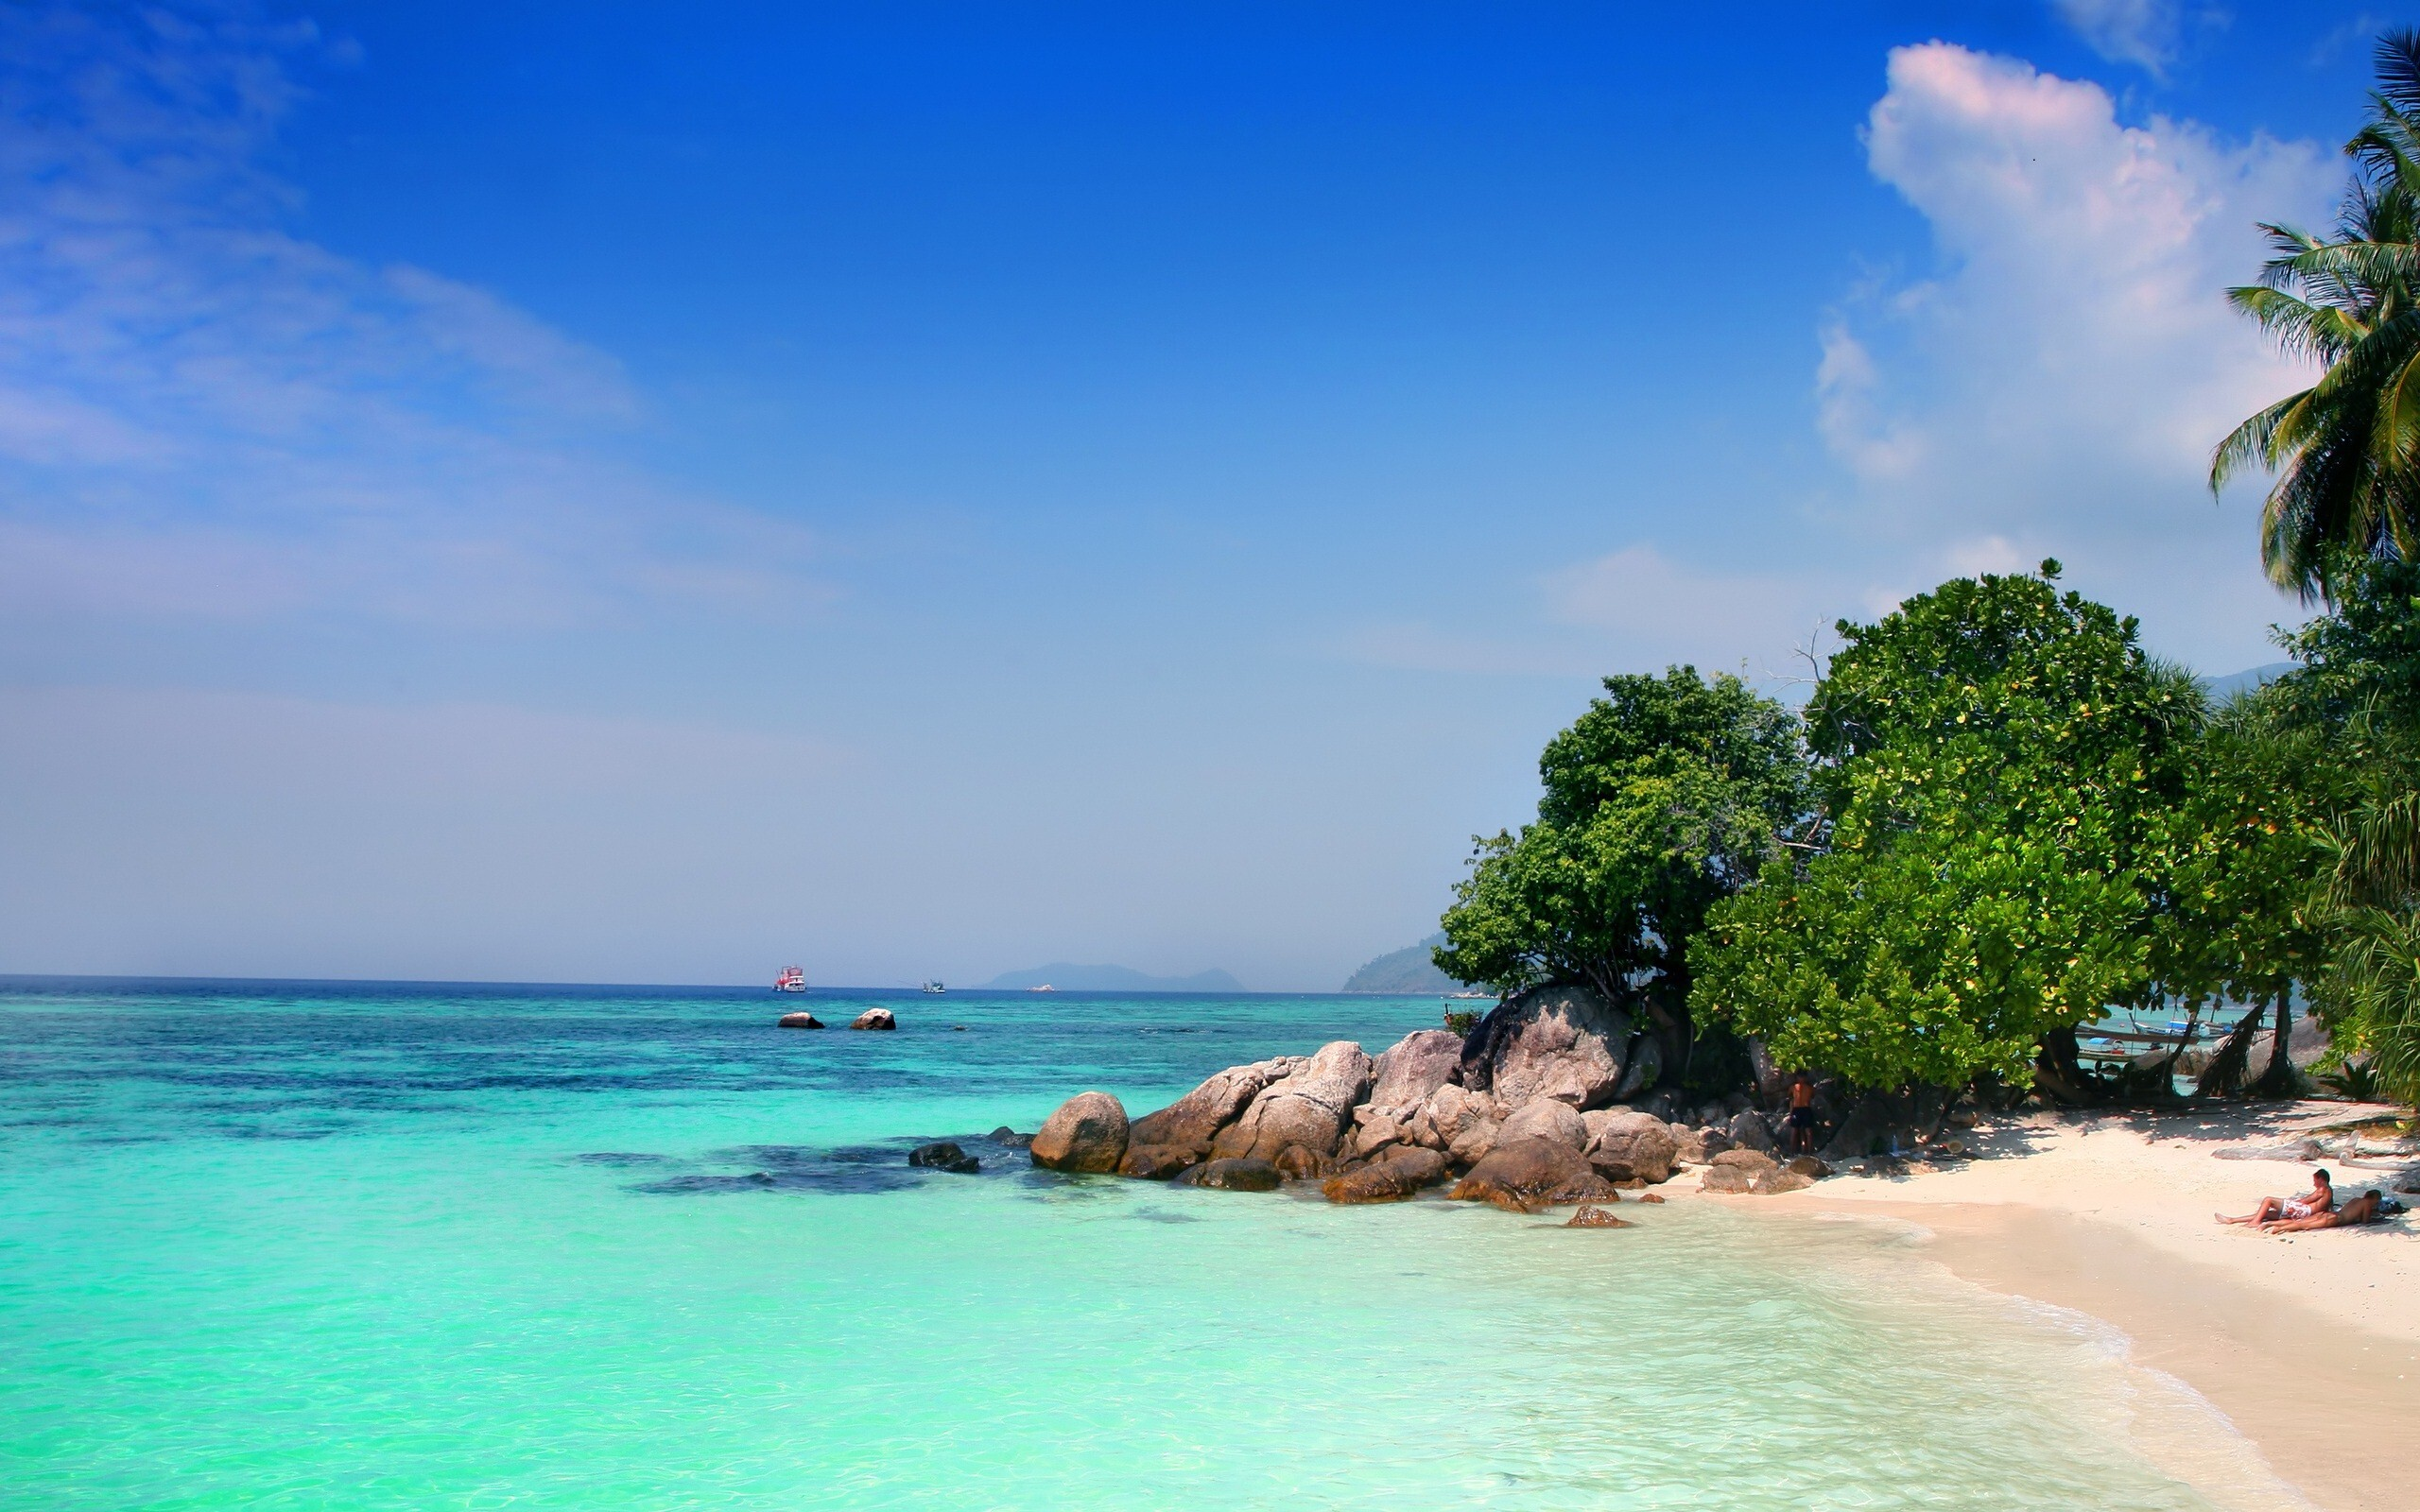 Ios 11 Wallpapers Iphone X Beautiful Ko Lipe Island Beach In Thailand Hd Wallpapers